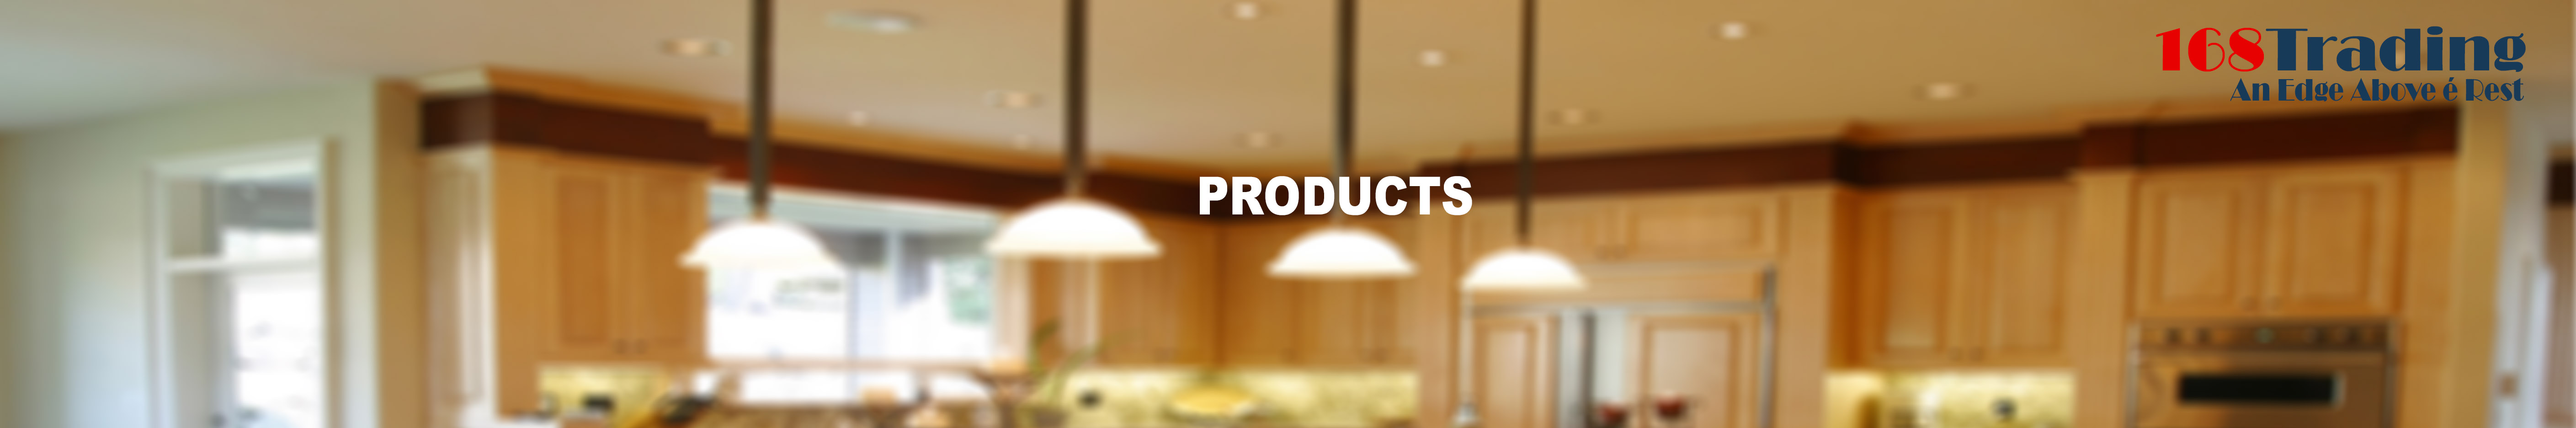 banner_products